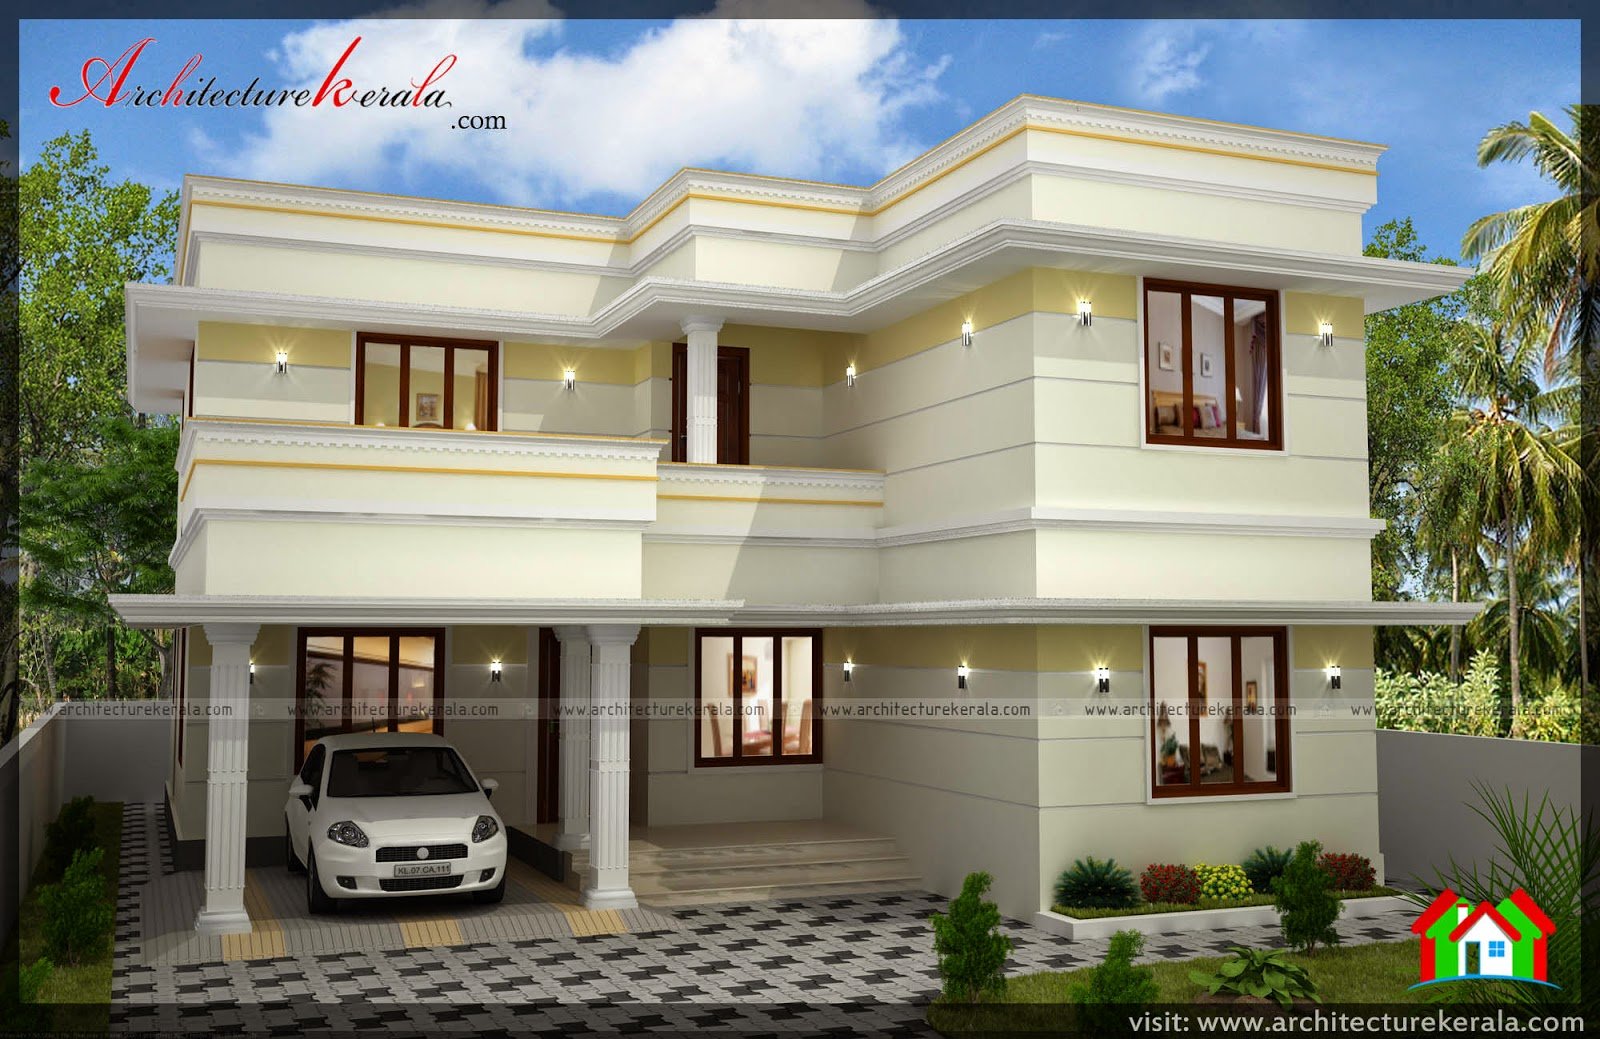 Double Storey Architectural Designs - Modern House